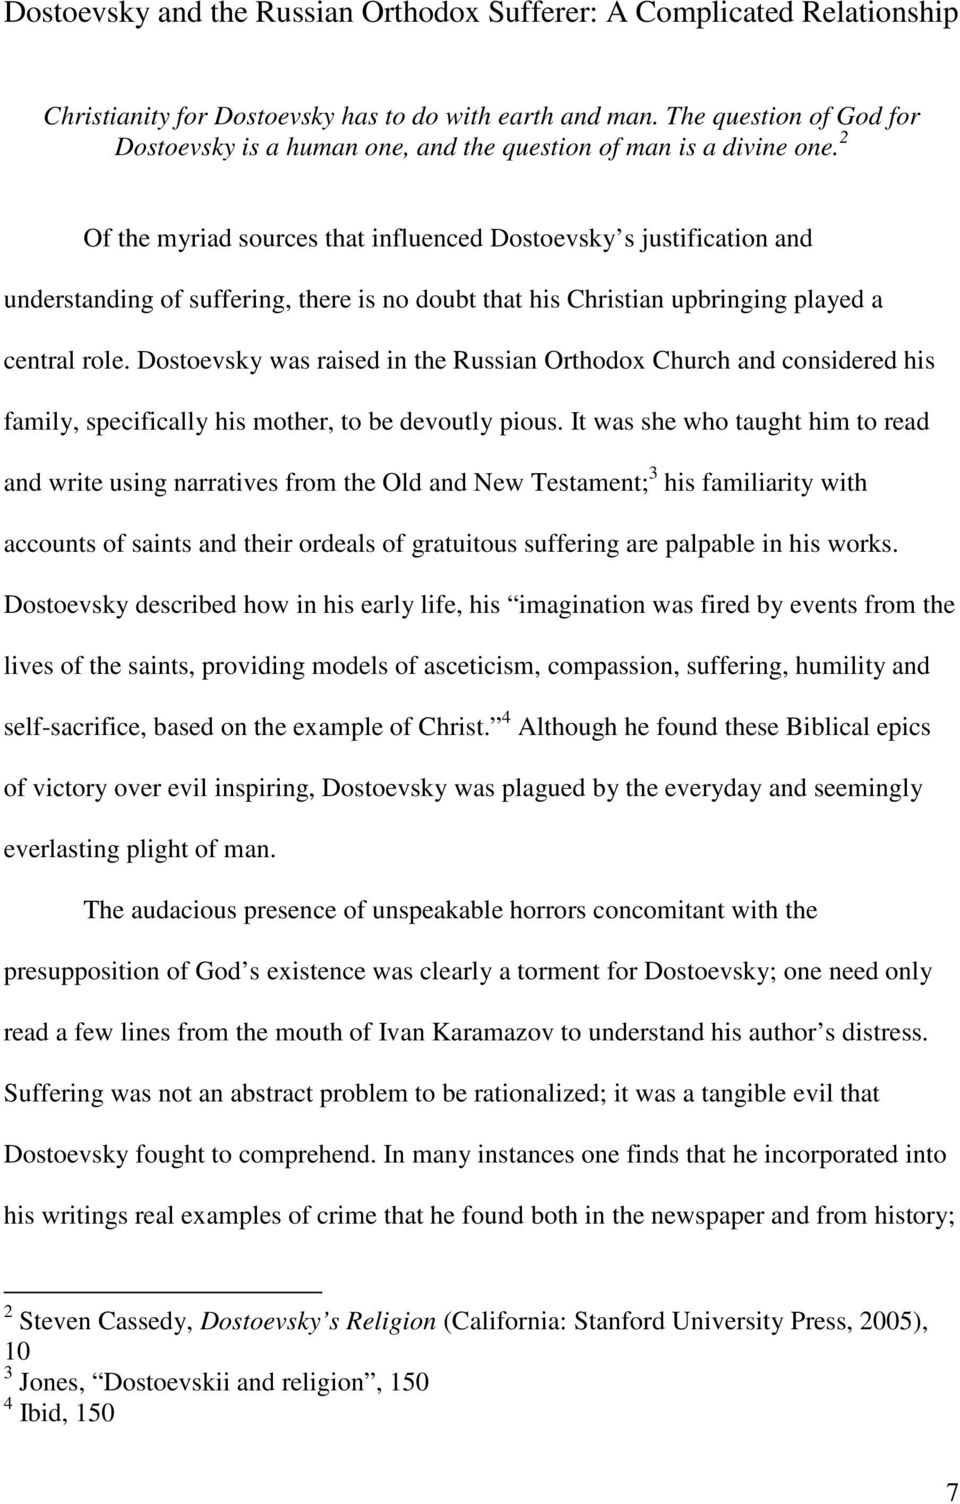 an overview of the origins of satan as a character in christian religion Historical theology is the development of theology in church history  a  confession of faith is a longer summary of christian doctrine  satan has  tried to destroy it, but the bible is an anvil that has worn out many hammers   them lifelong habits and character, though they cannot guarantee that they will be  saved.